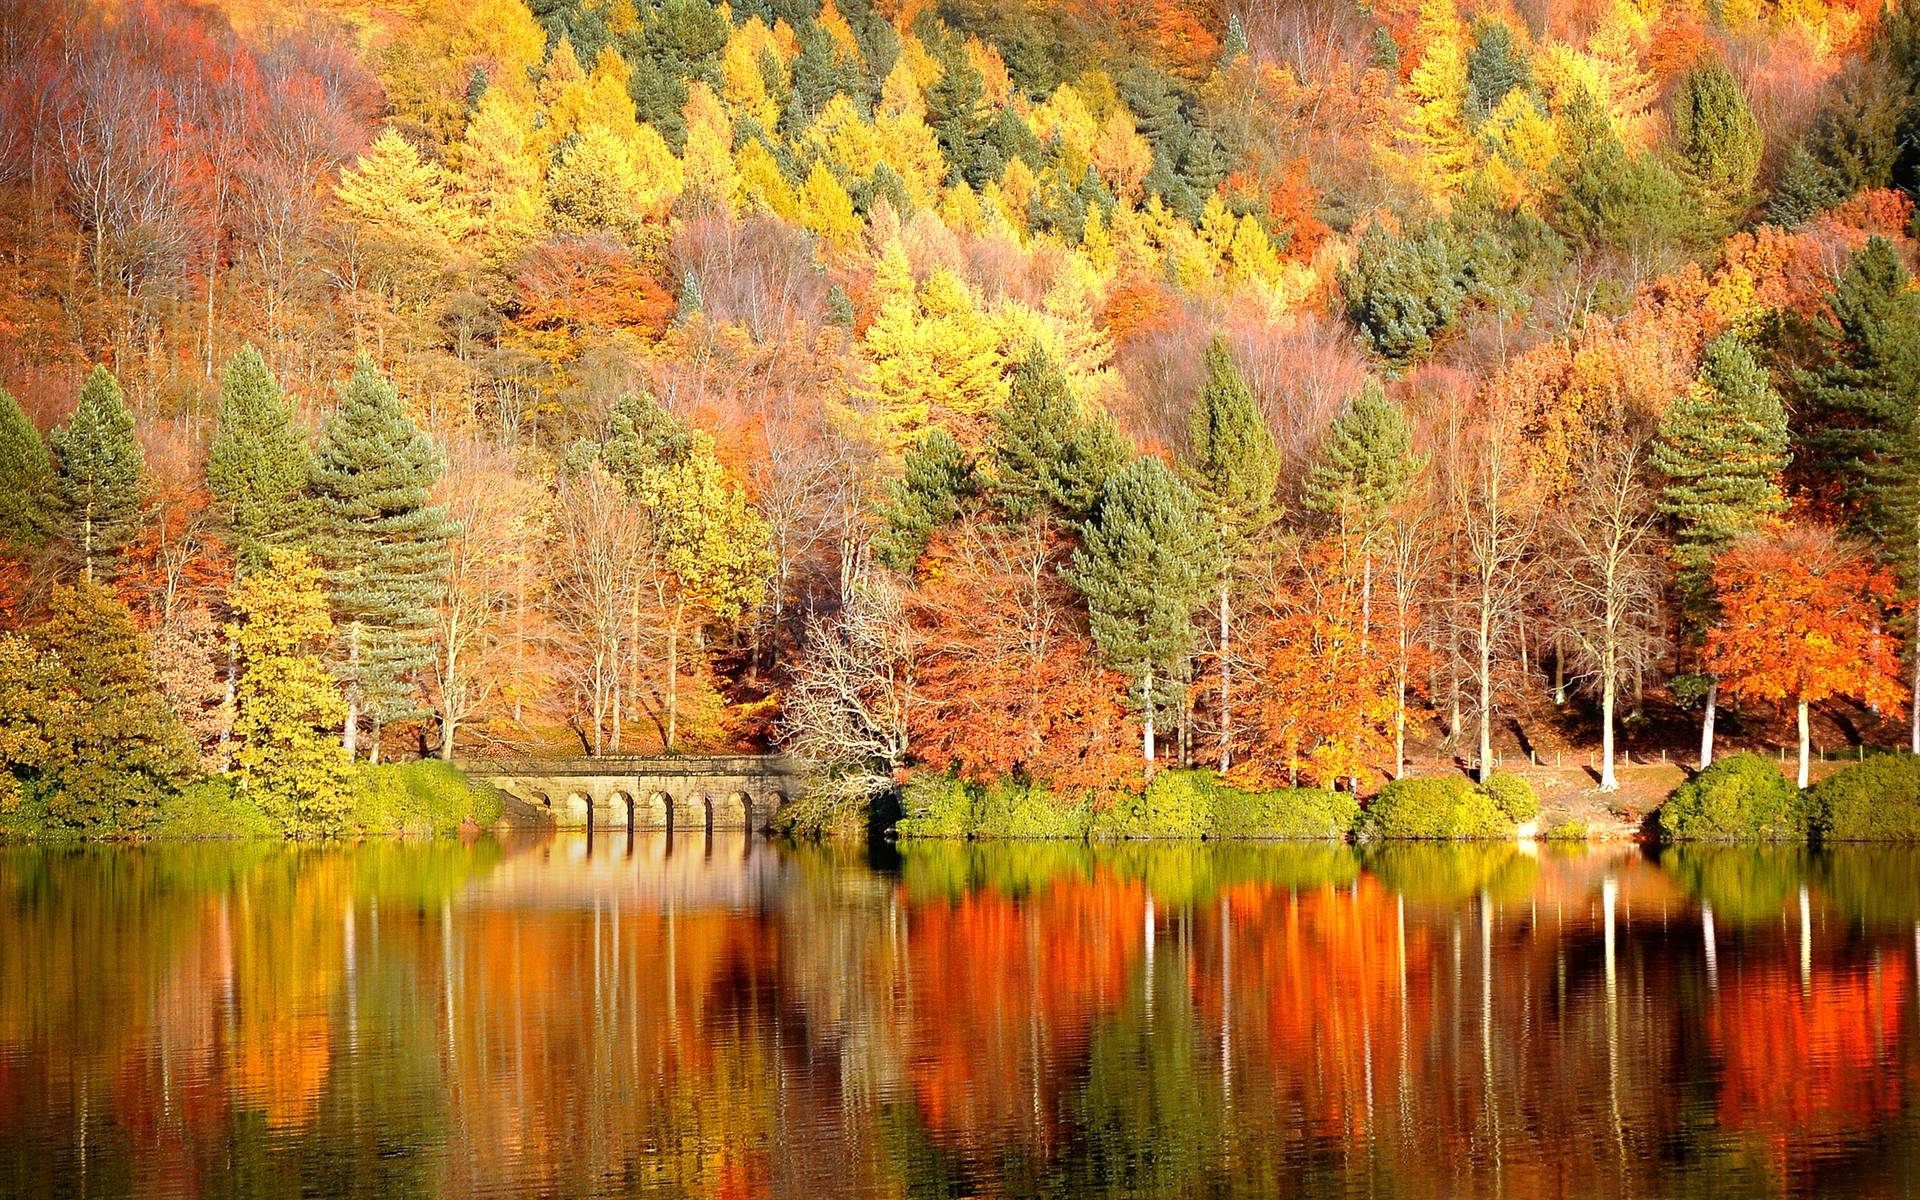 autumn images backgrounds 25 wallpapers